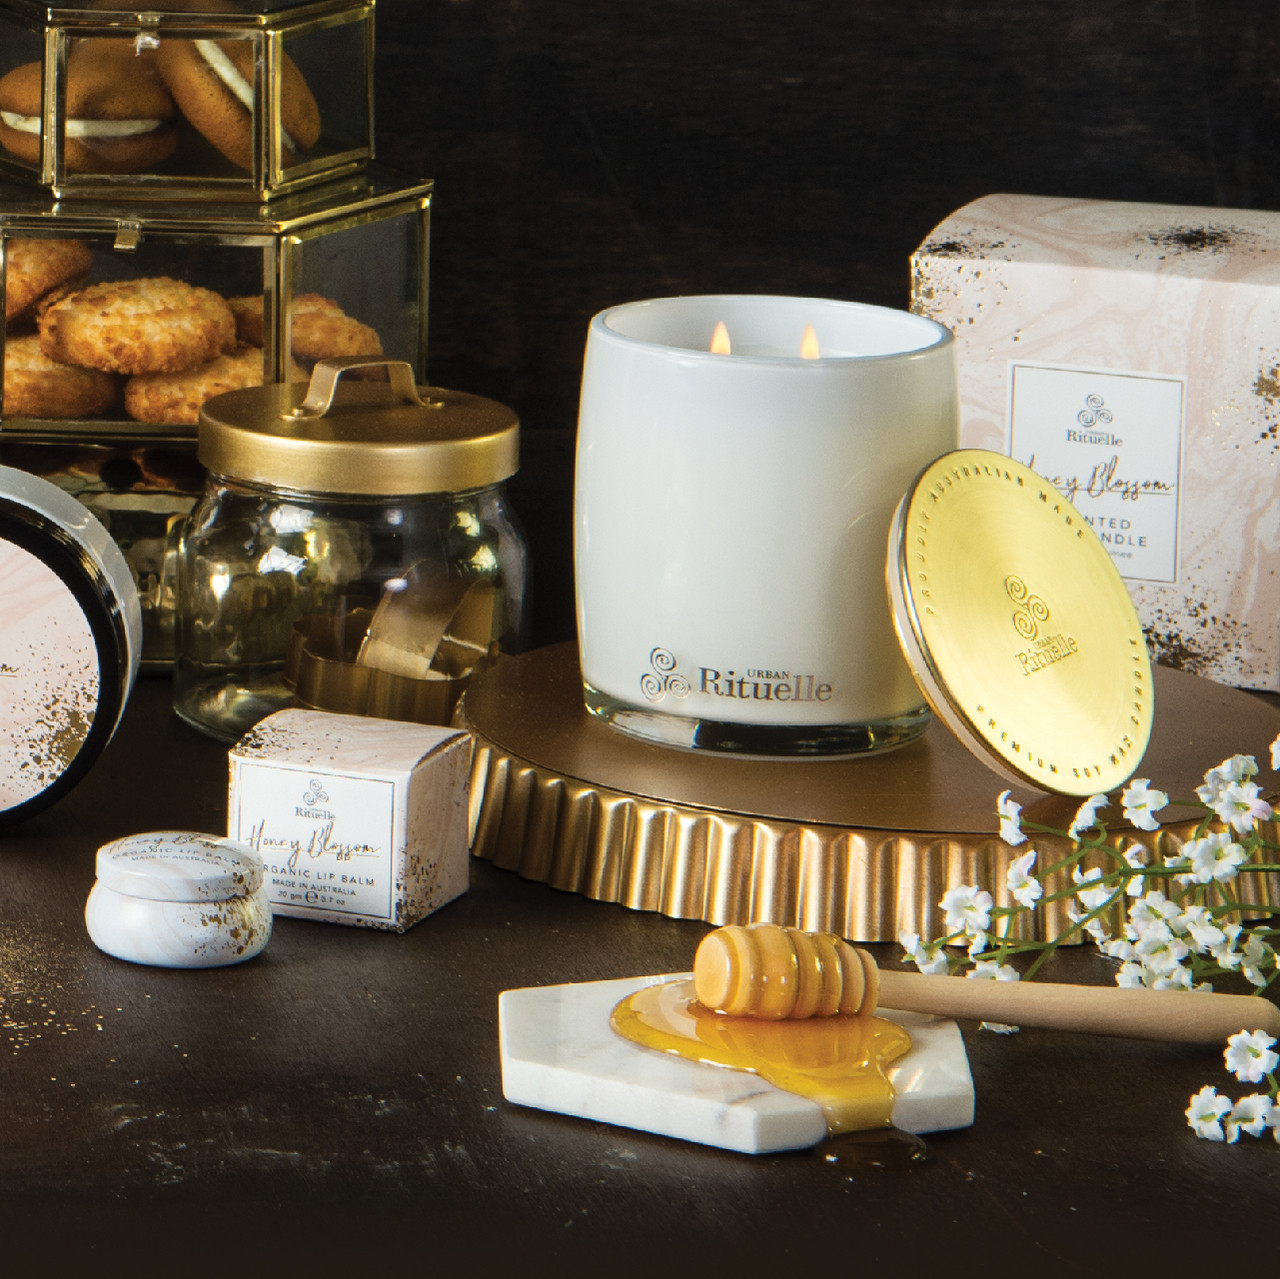 Sweet Treats - Honey Blossom - Scented Soy Candle - Urban Rituelle